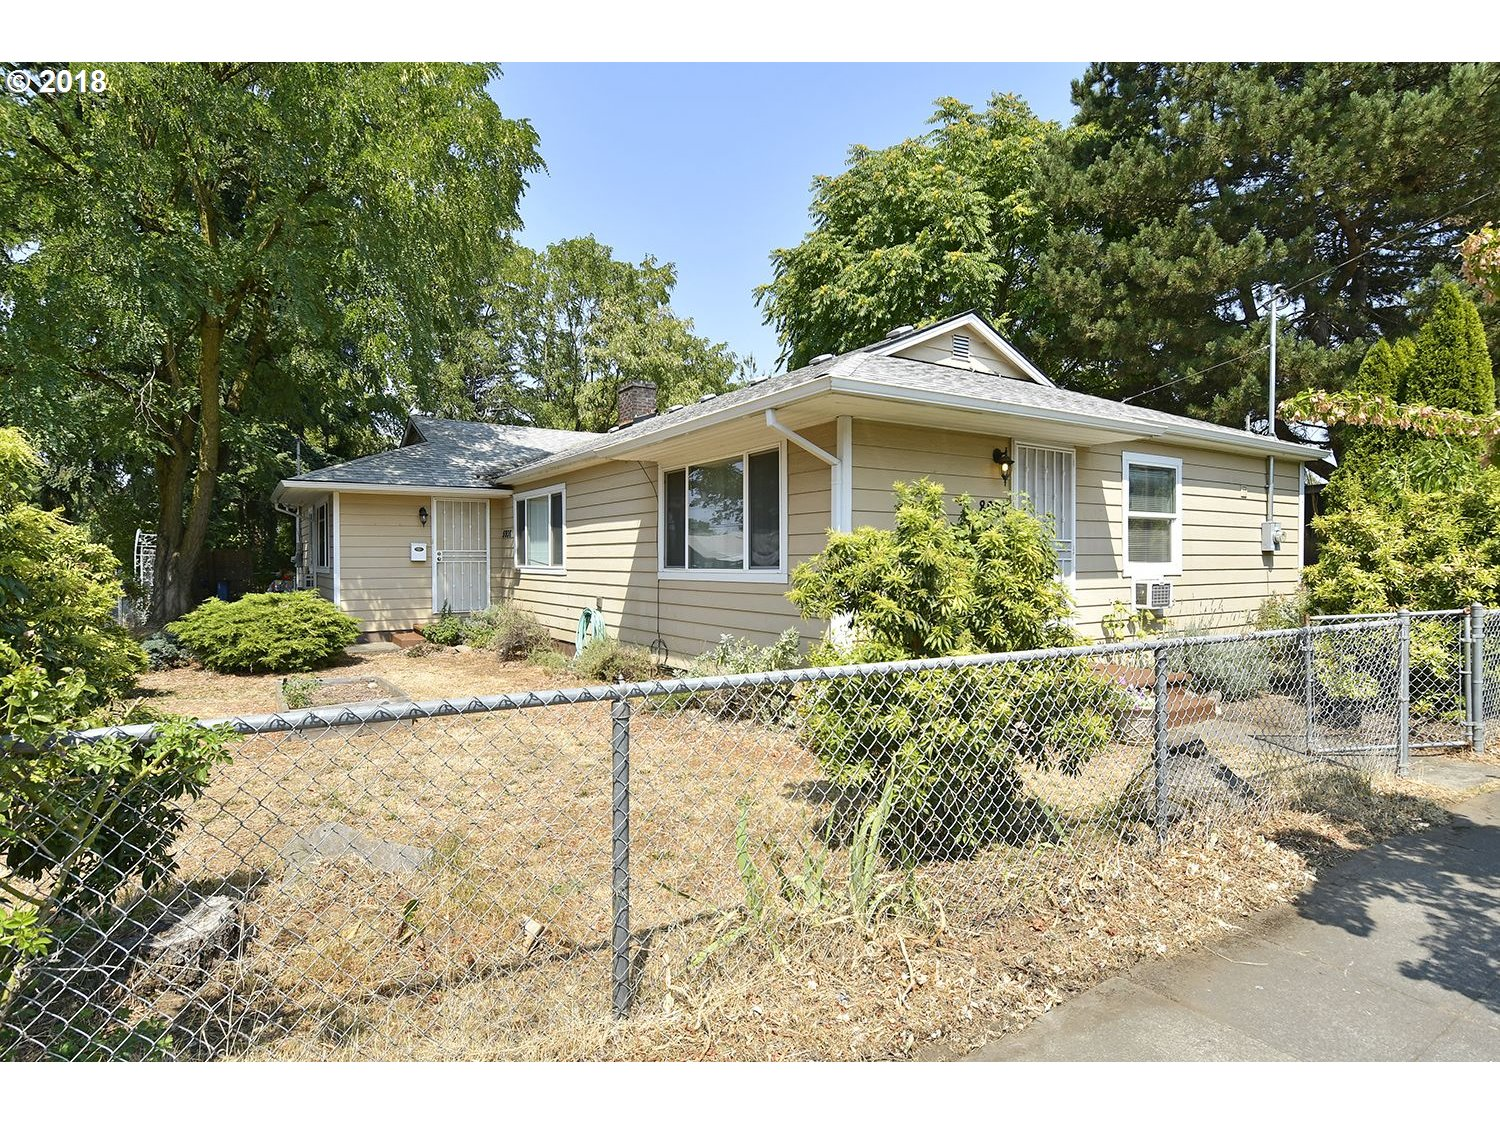 Photo for 5936 SE 80TH AVE, Portland, OR 97206 (MLS # 18181238)